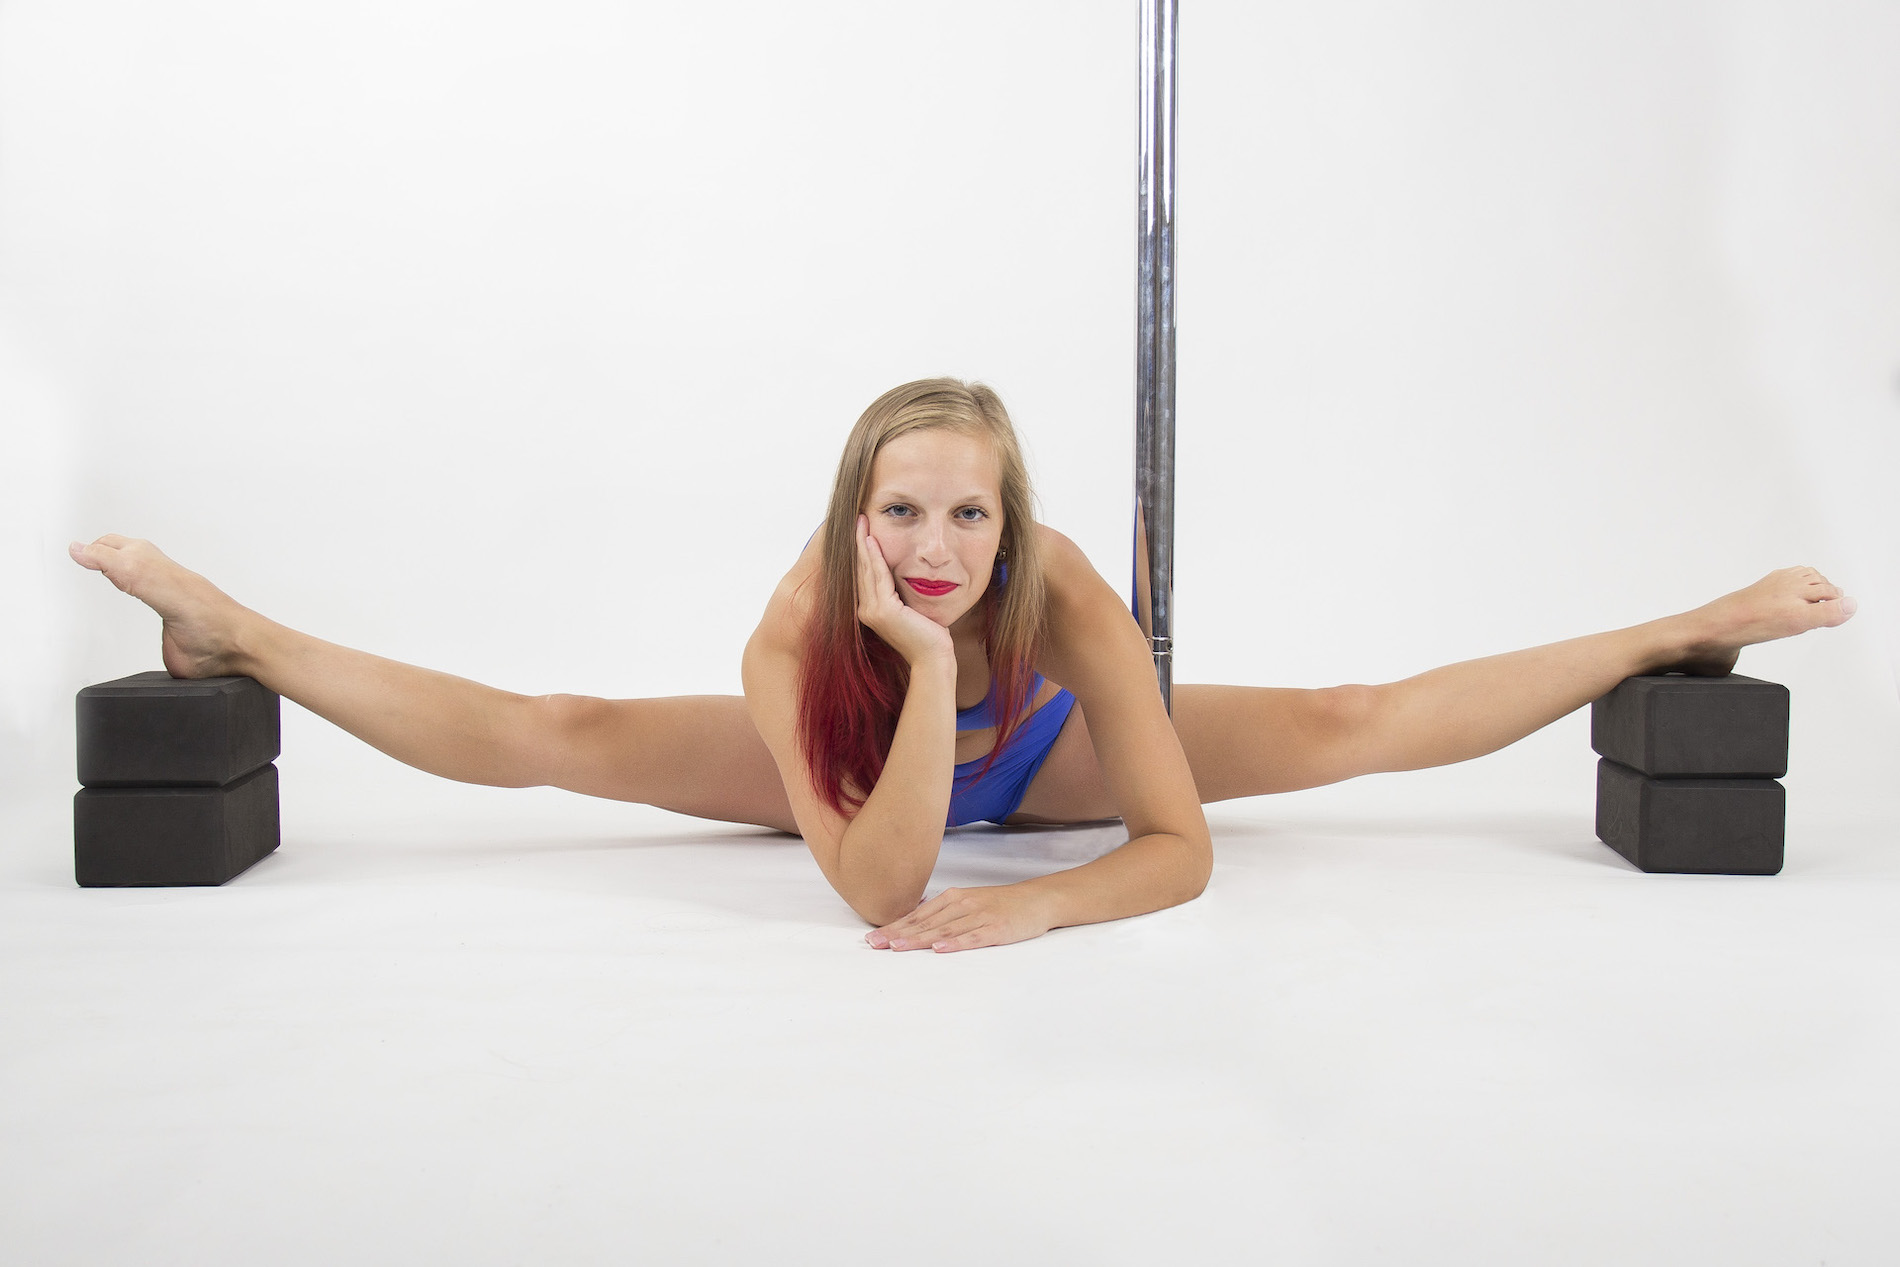 Flexi stretching dance